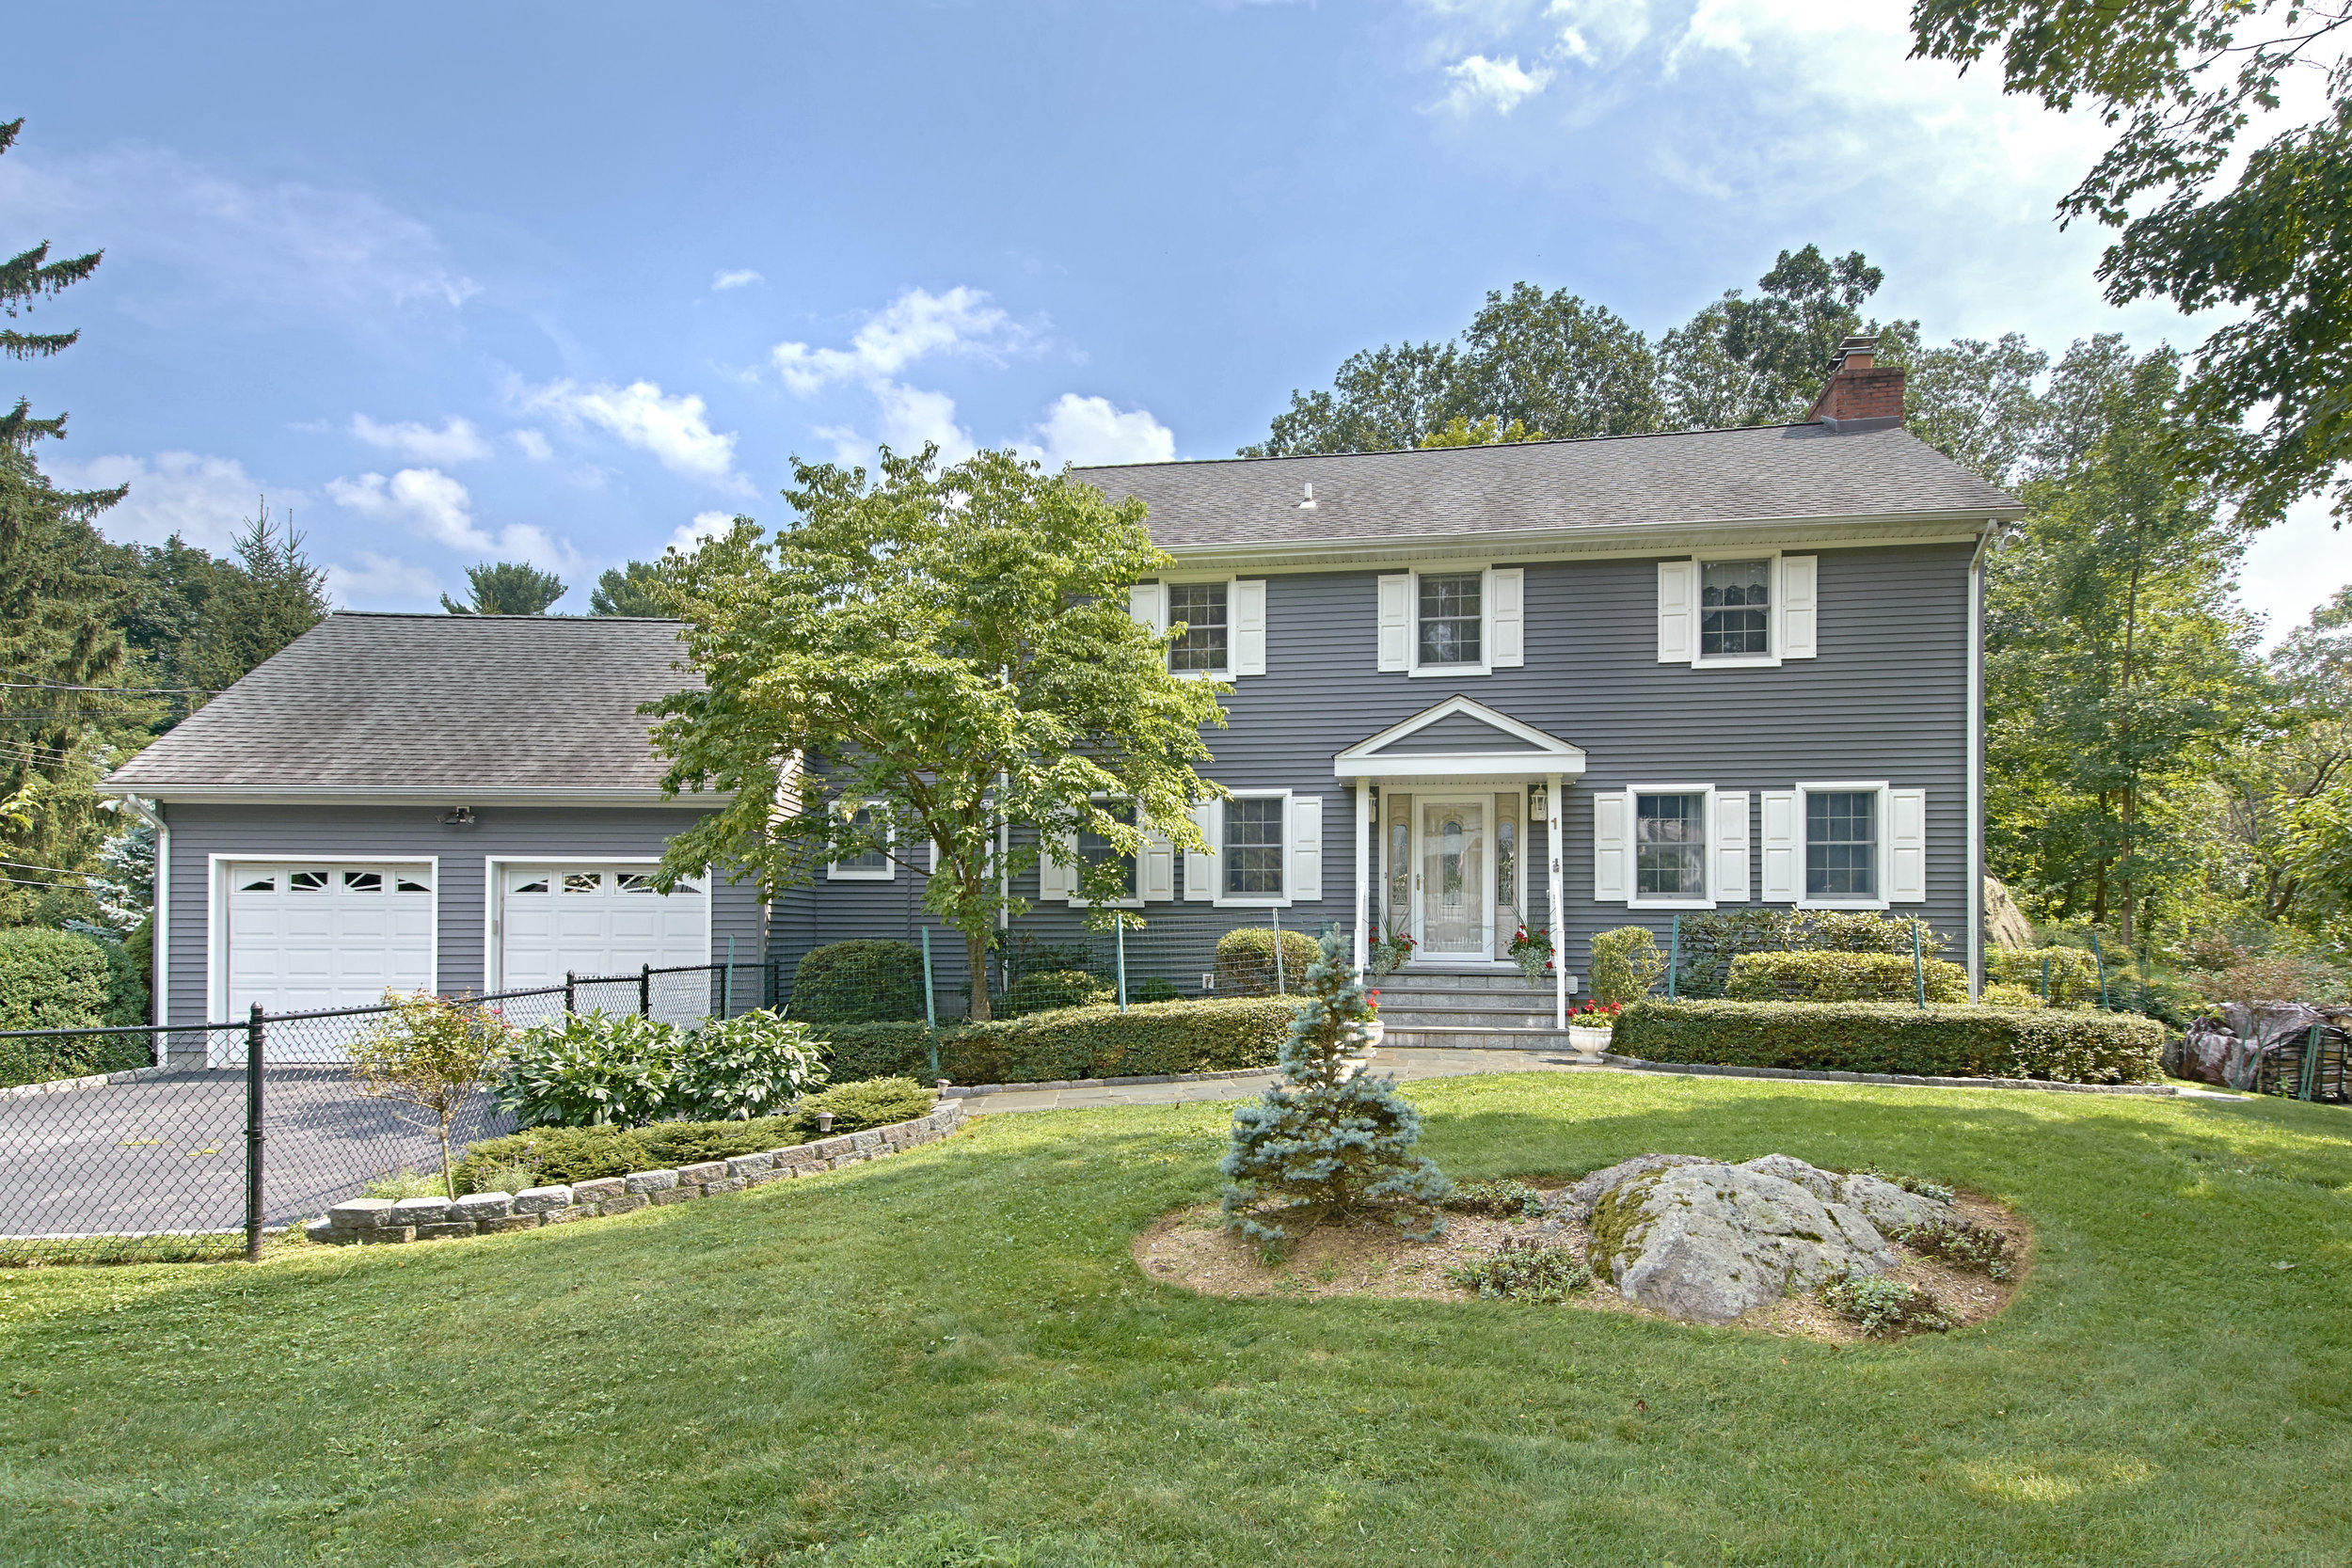 1 BROOK LN  CORTLANDT MANOR  LIST PRICE $799,000  SOLD PRICE $799,000  SOLD ON 04/12/19